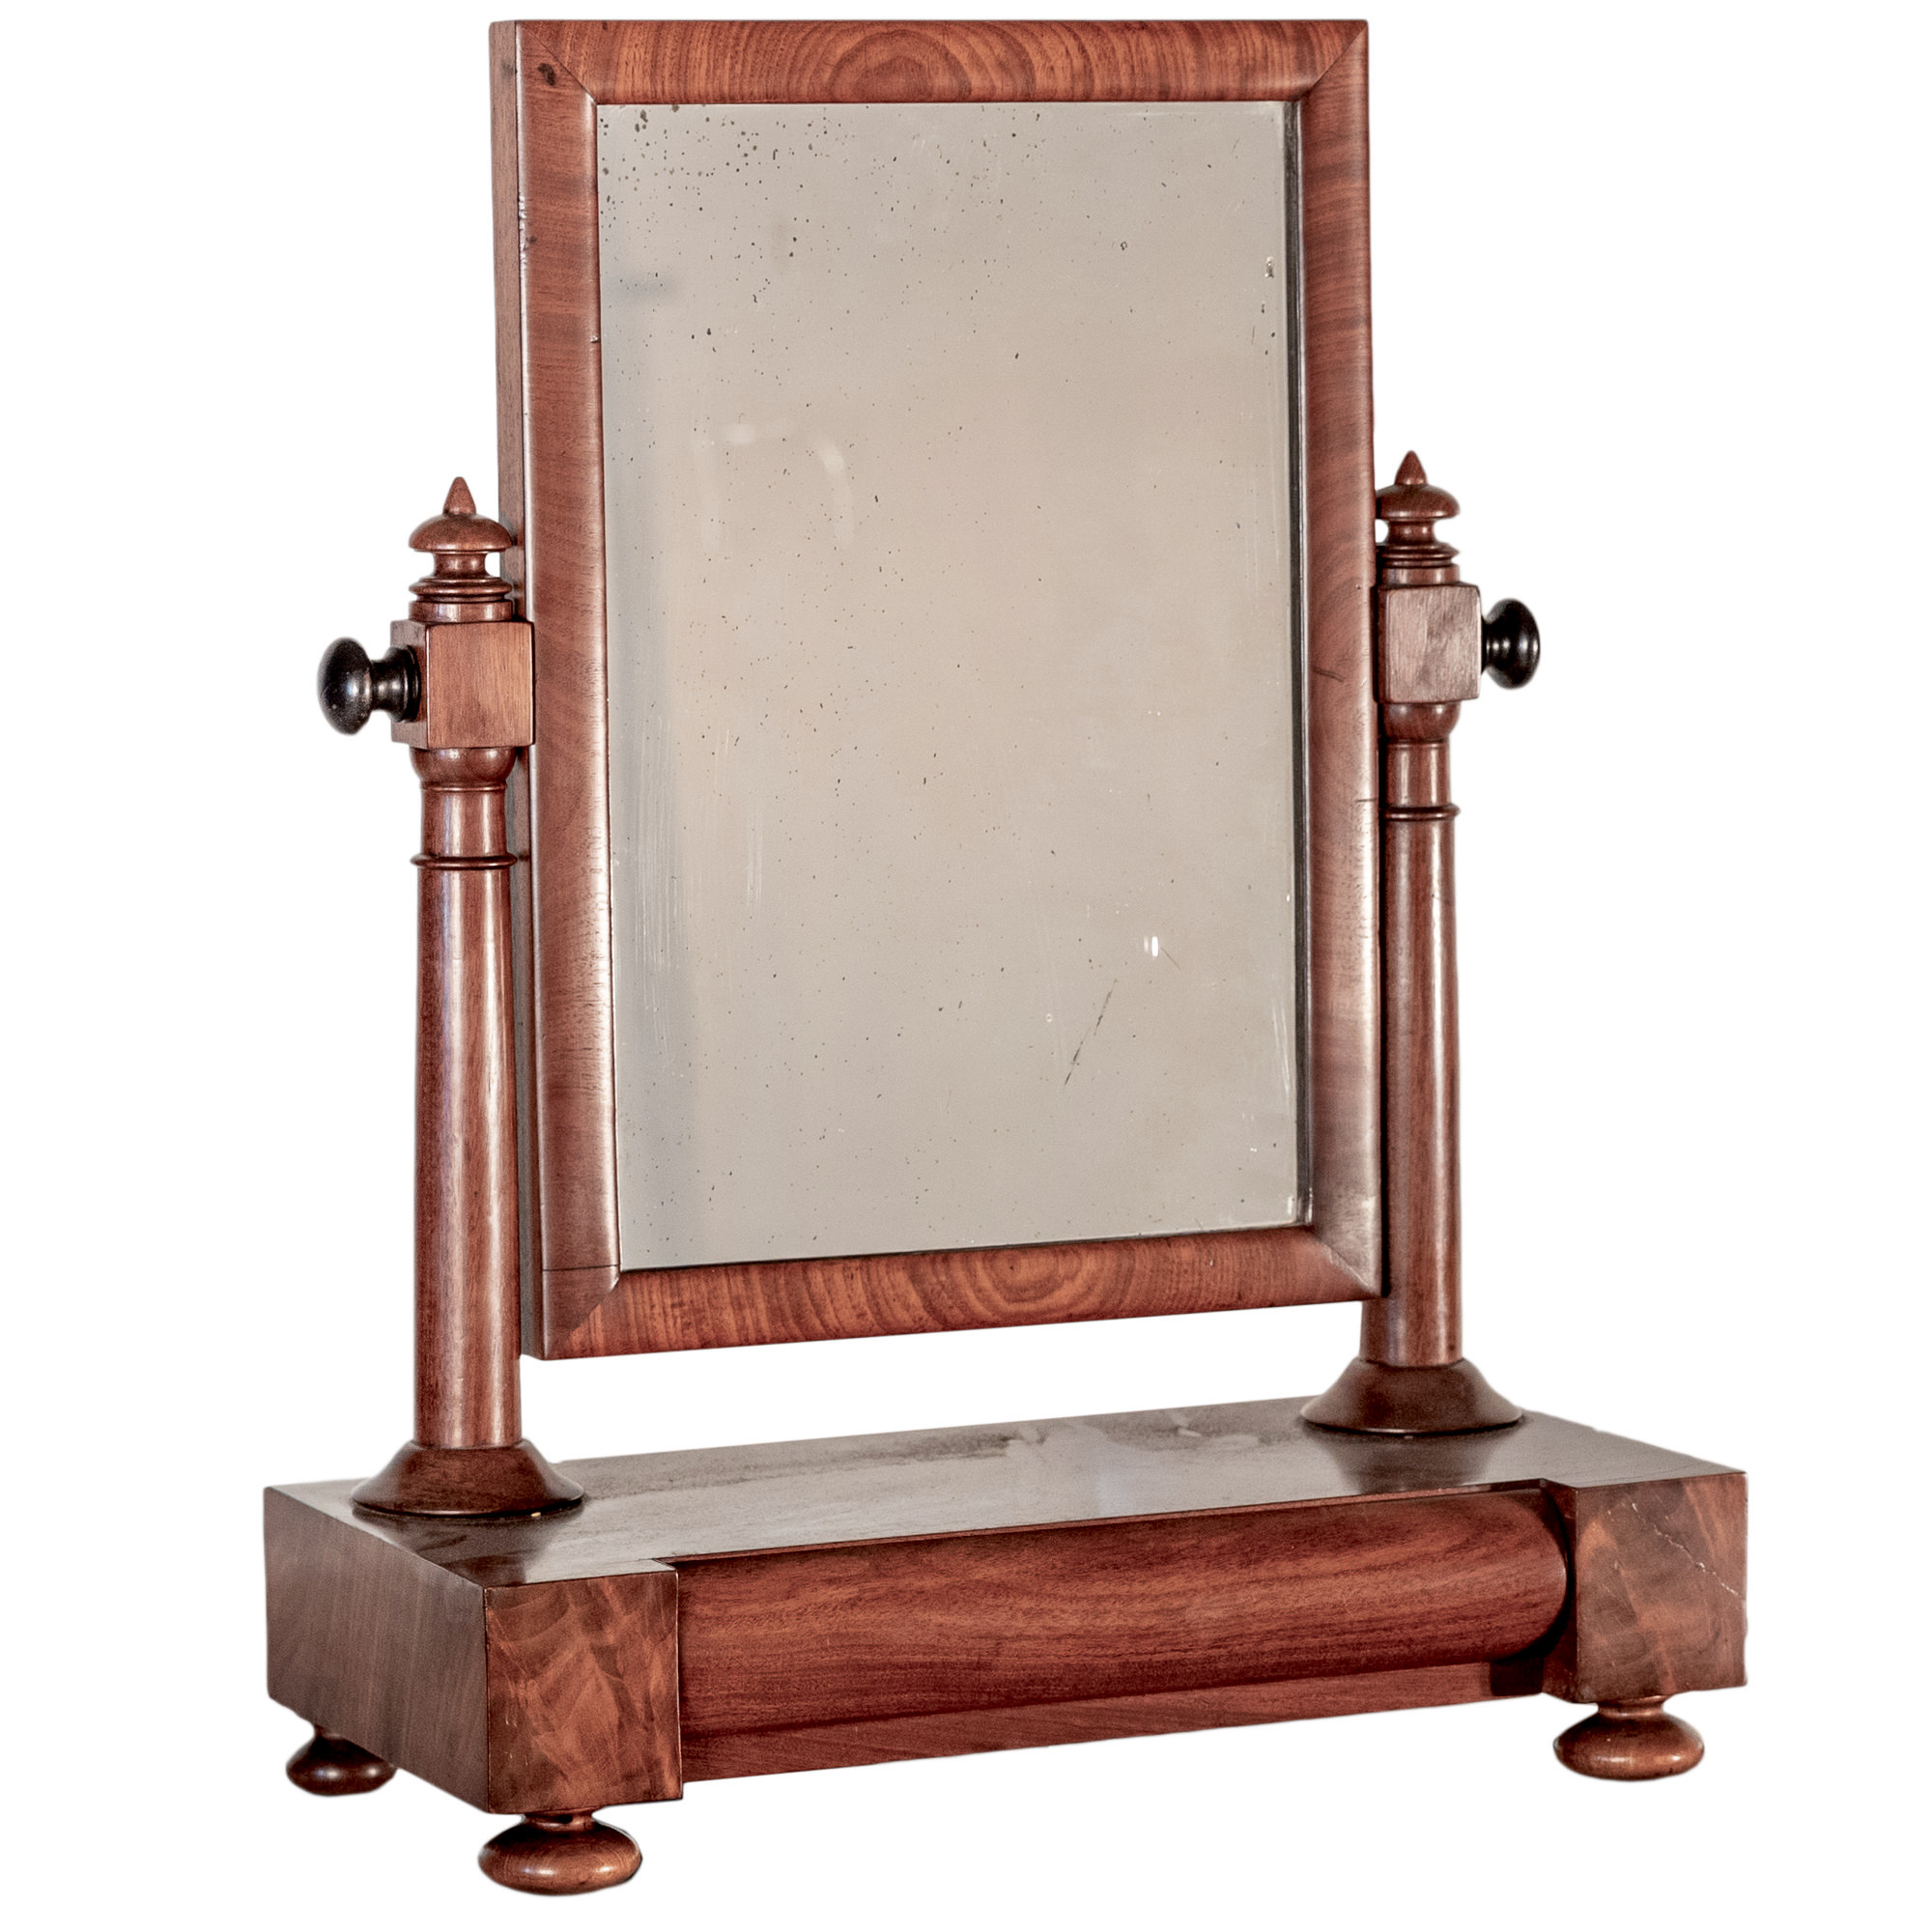 'Victorian Mahogany Toilet Mirror with Ebonised Knobs and Single Drawer 19th Century '